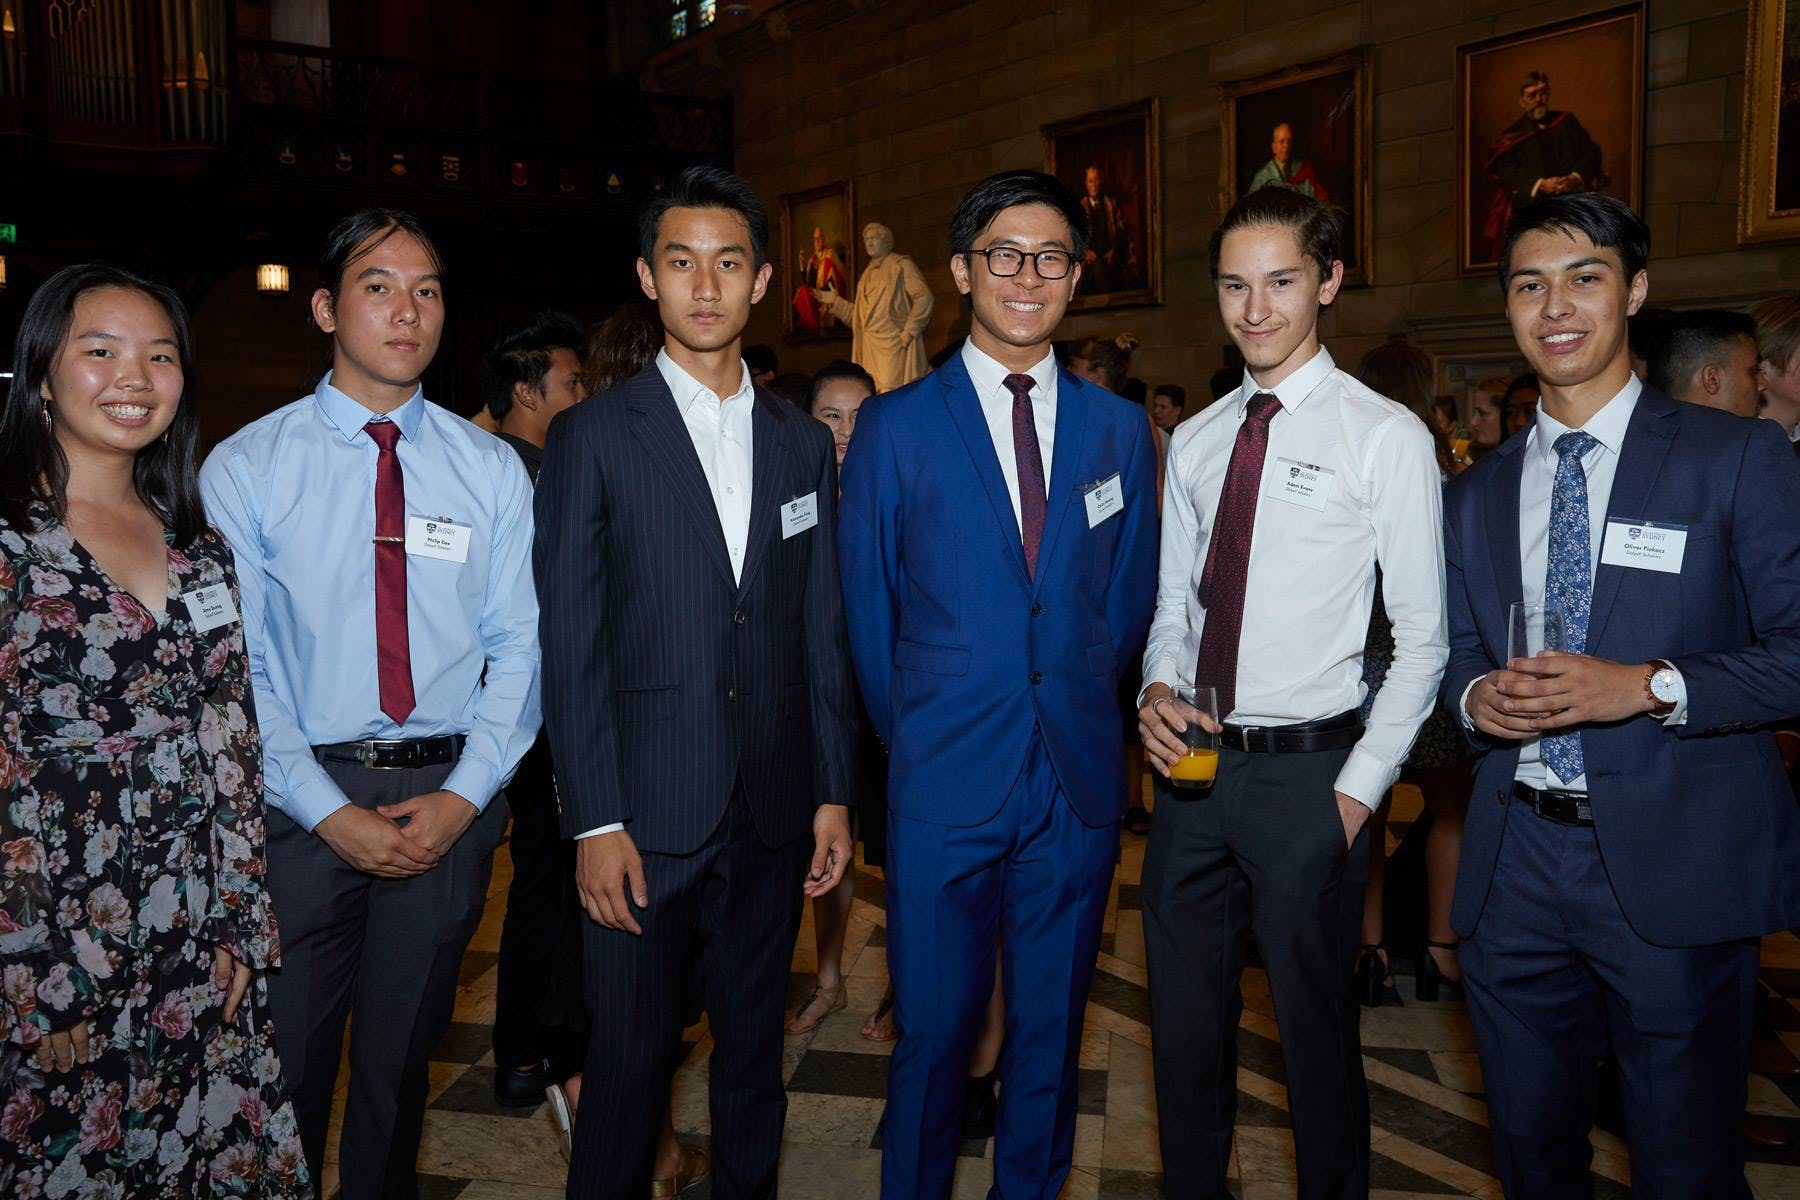 ACTIVATE USYD: A STUDENT LEADER PROFILE – Adam